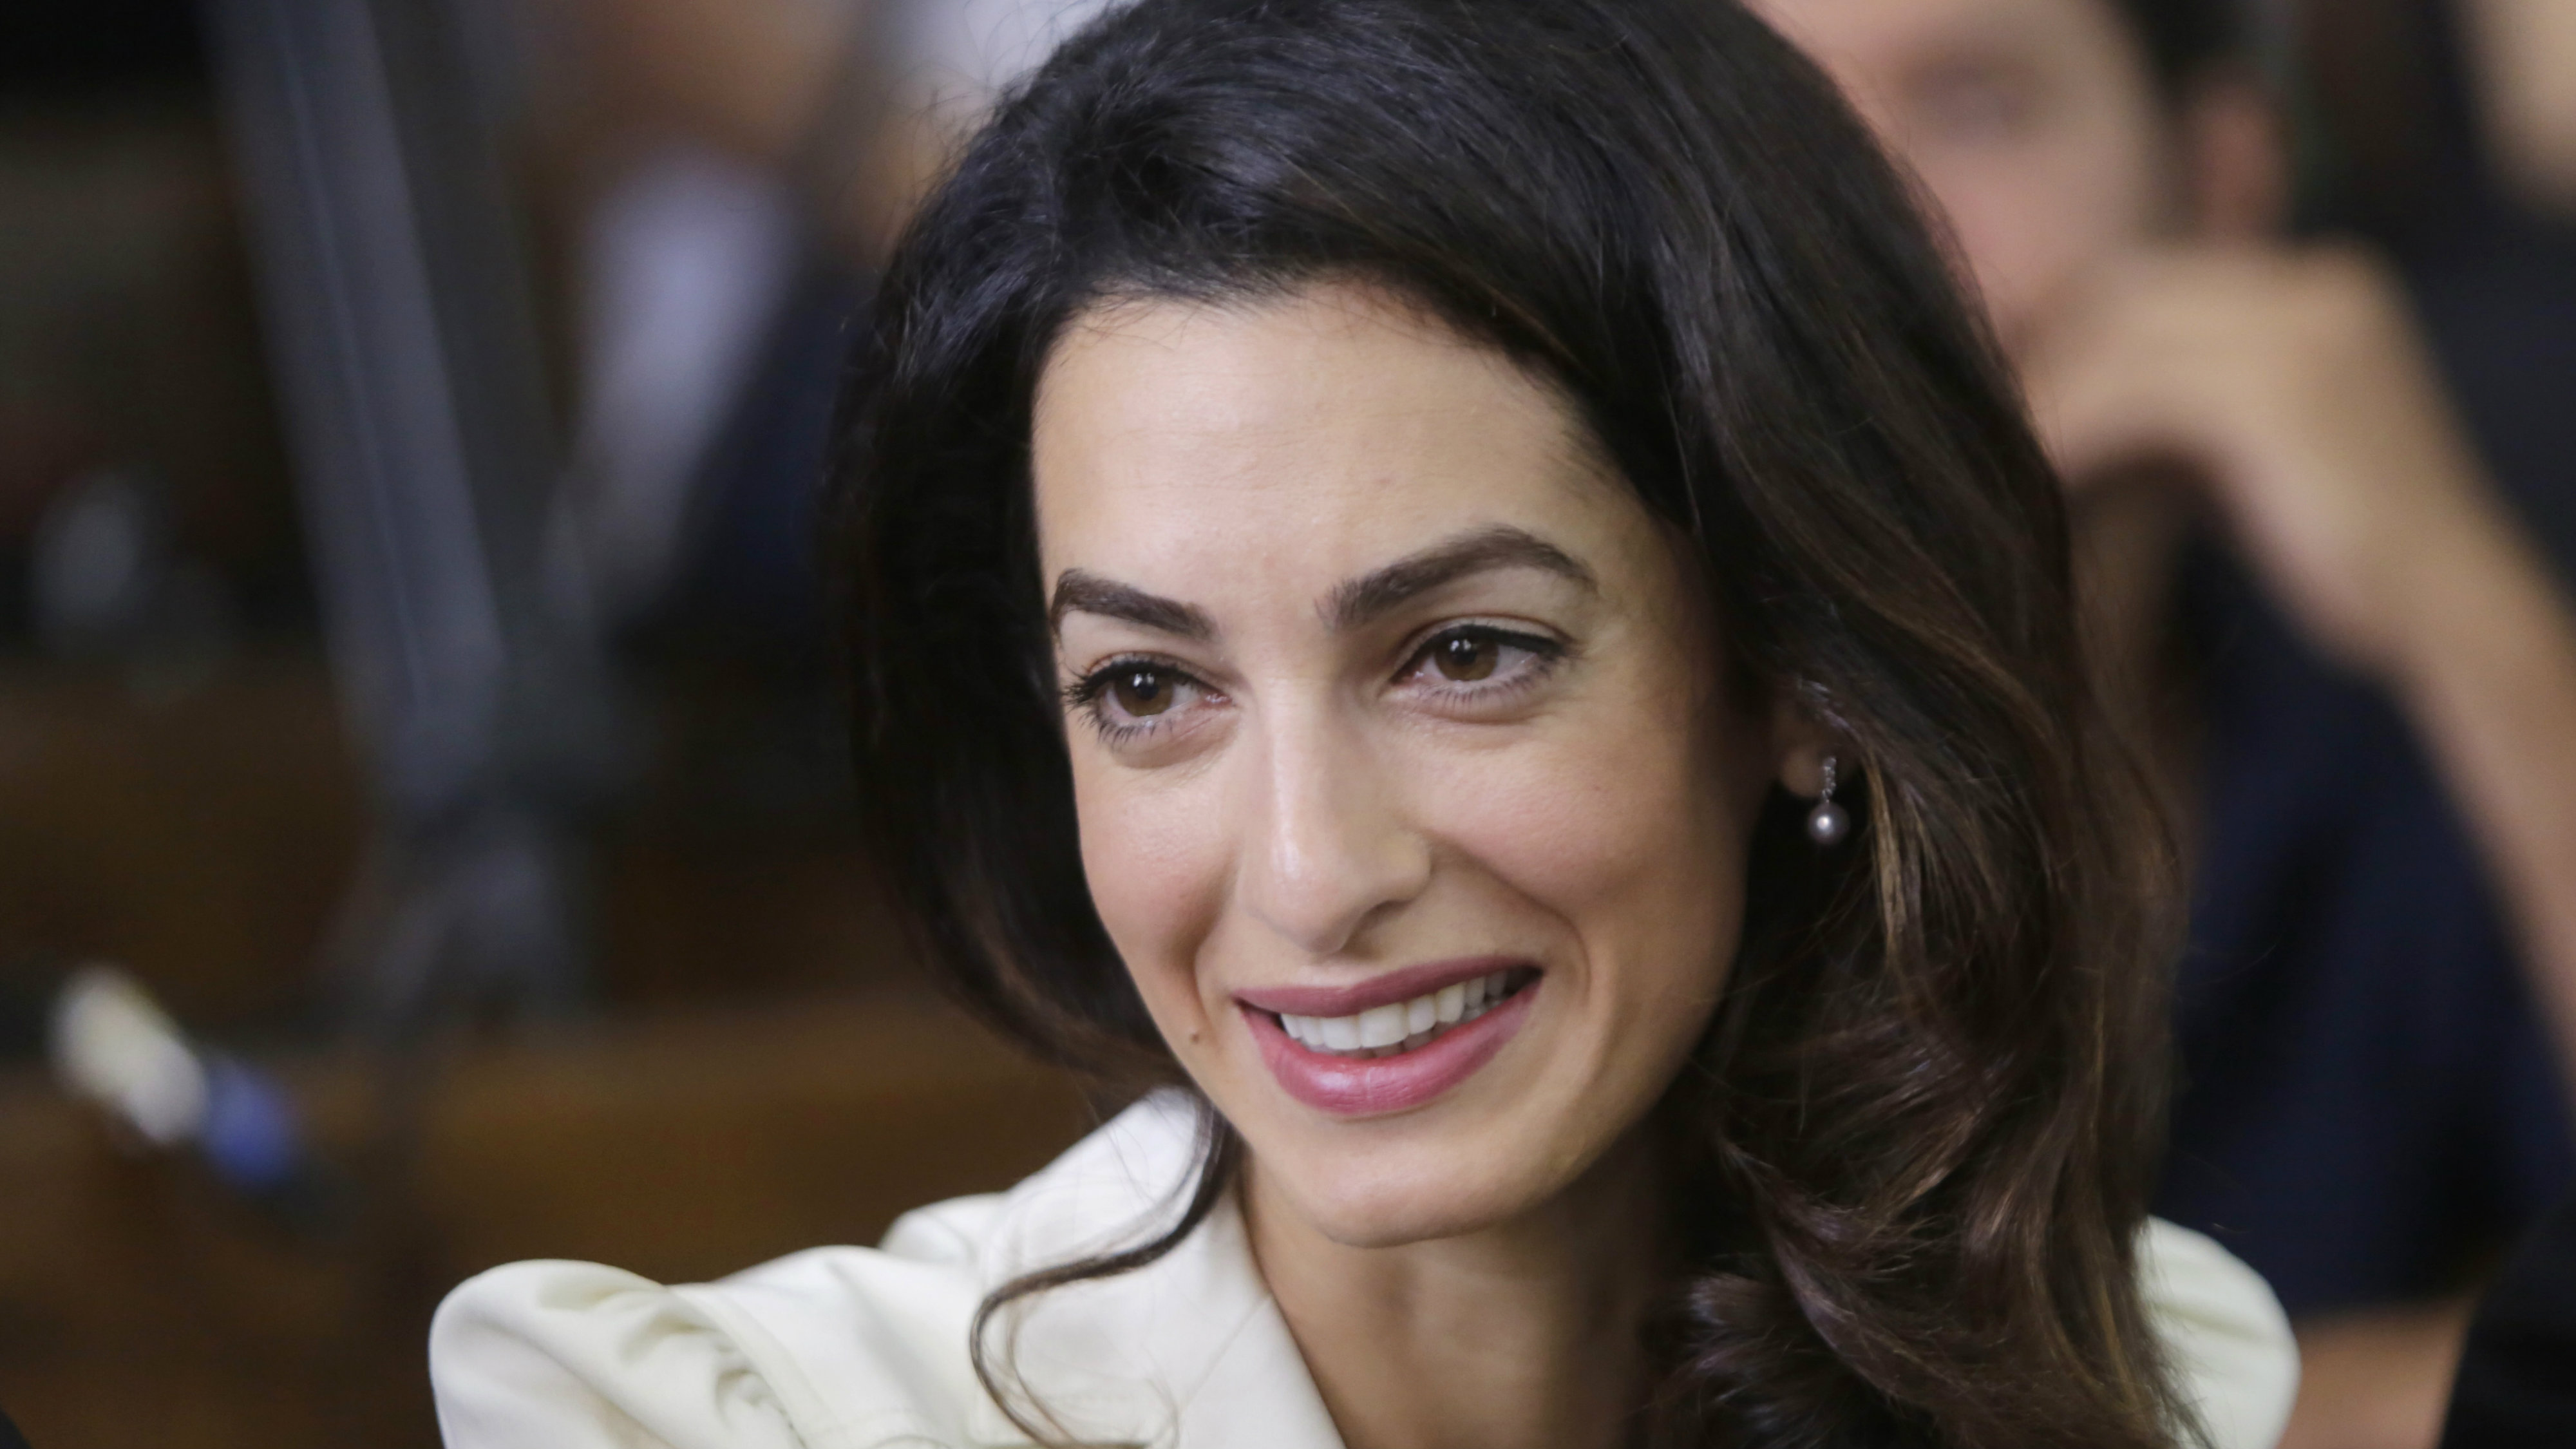 The Ap Describes Renowned Human Rights Lawyer Amal Clooney